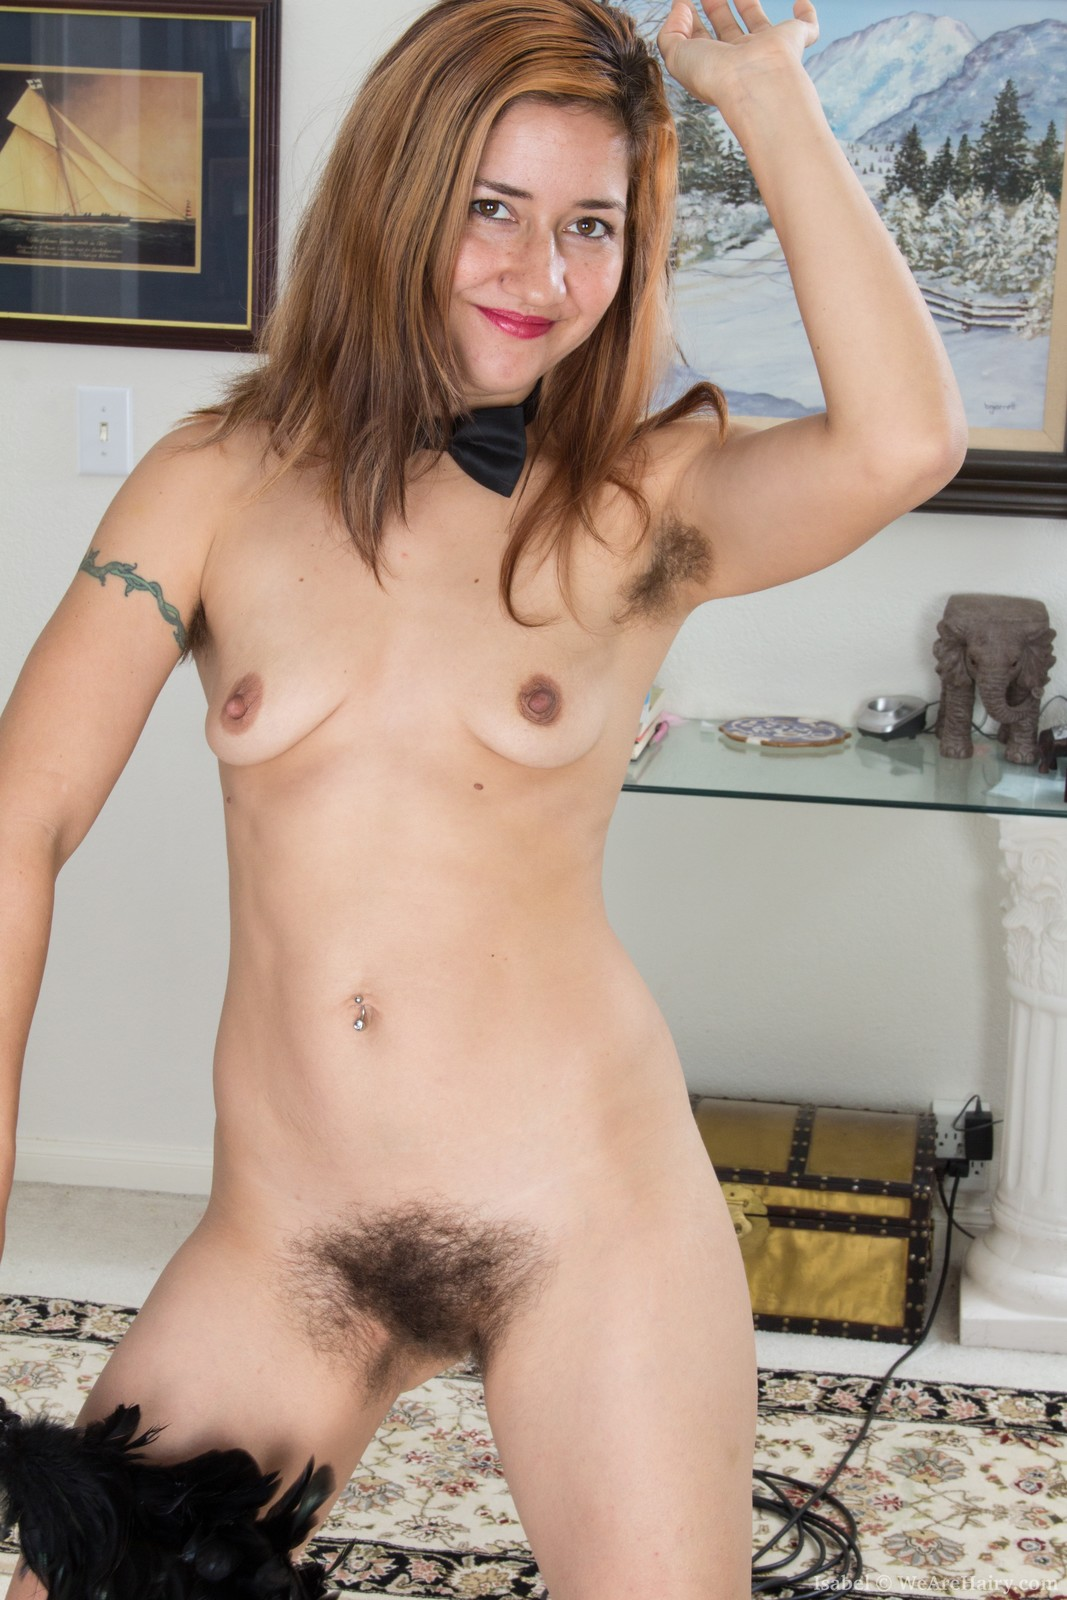 isabel loves her job as a hairy woman maid. she enjoys dressing in